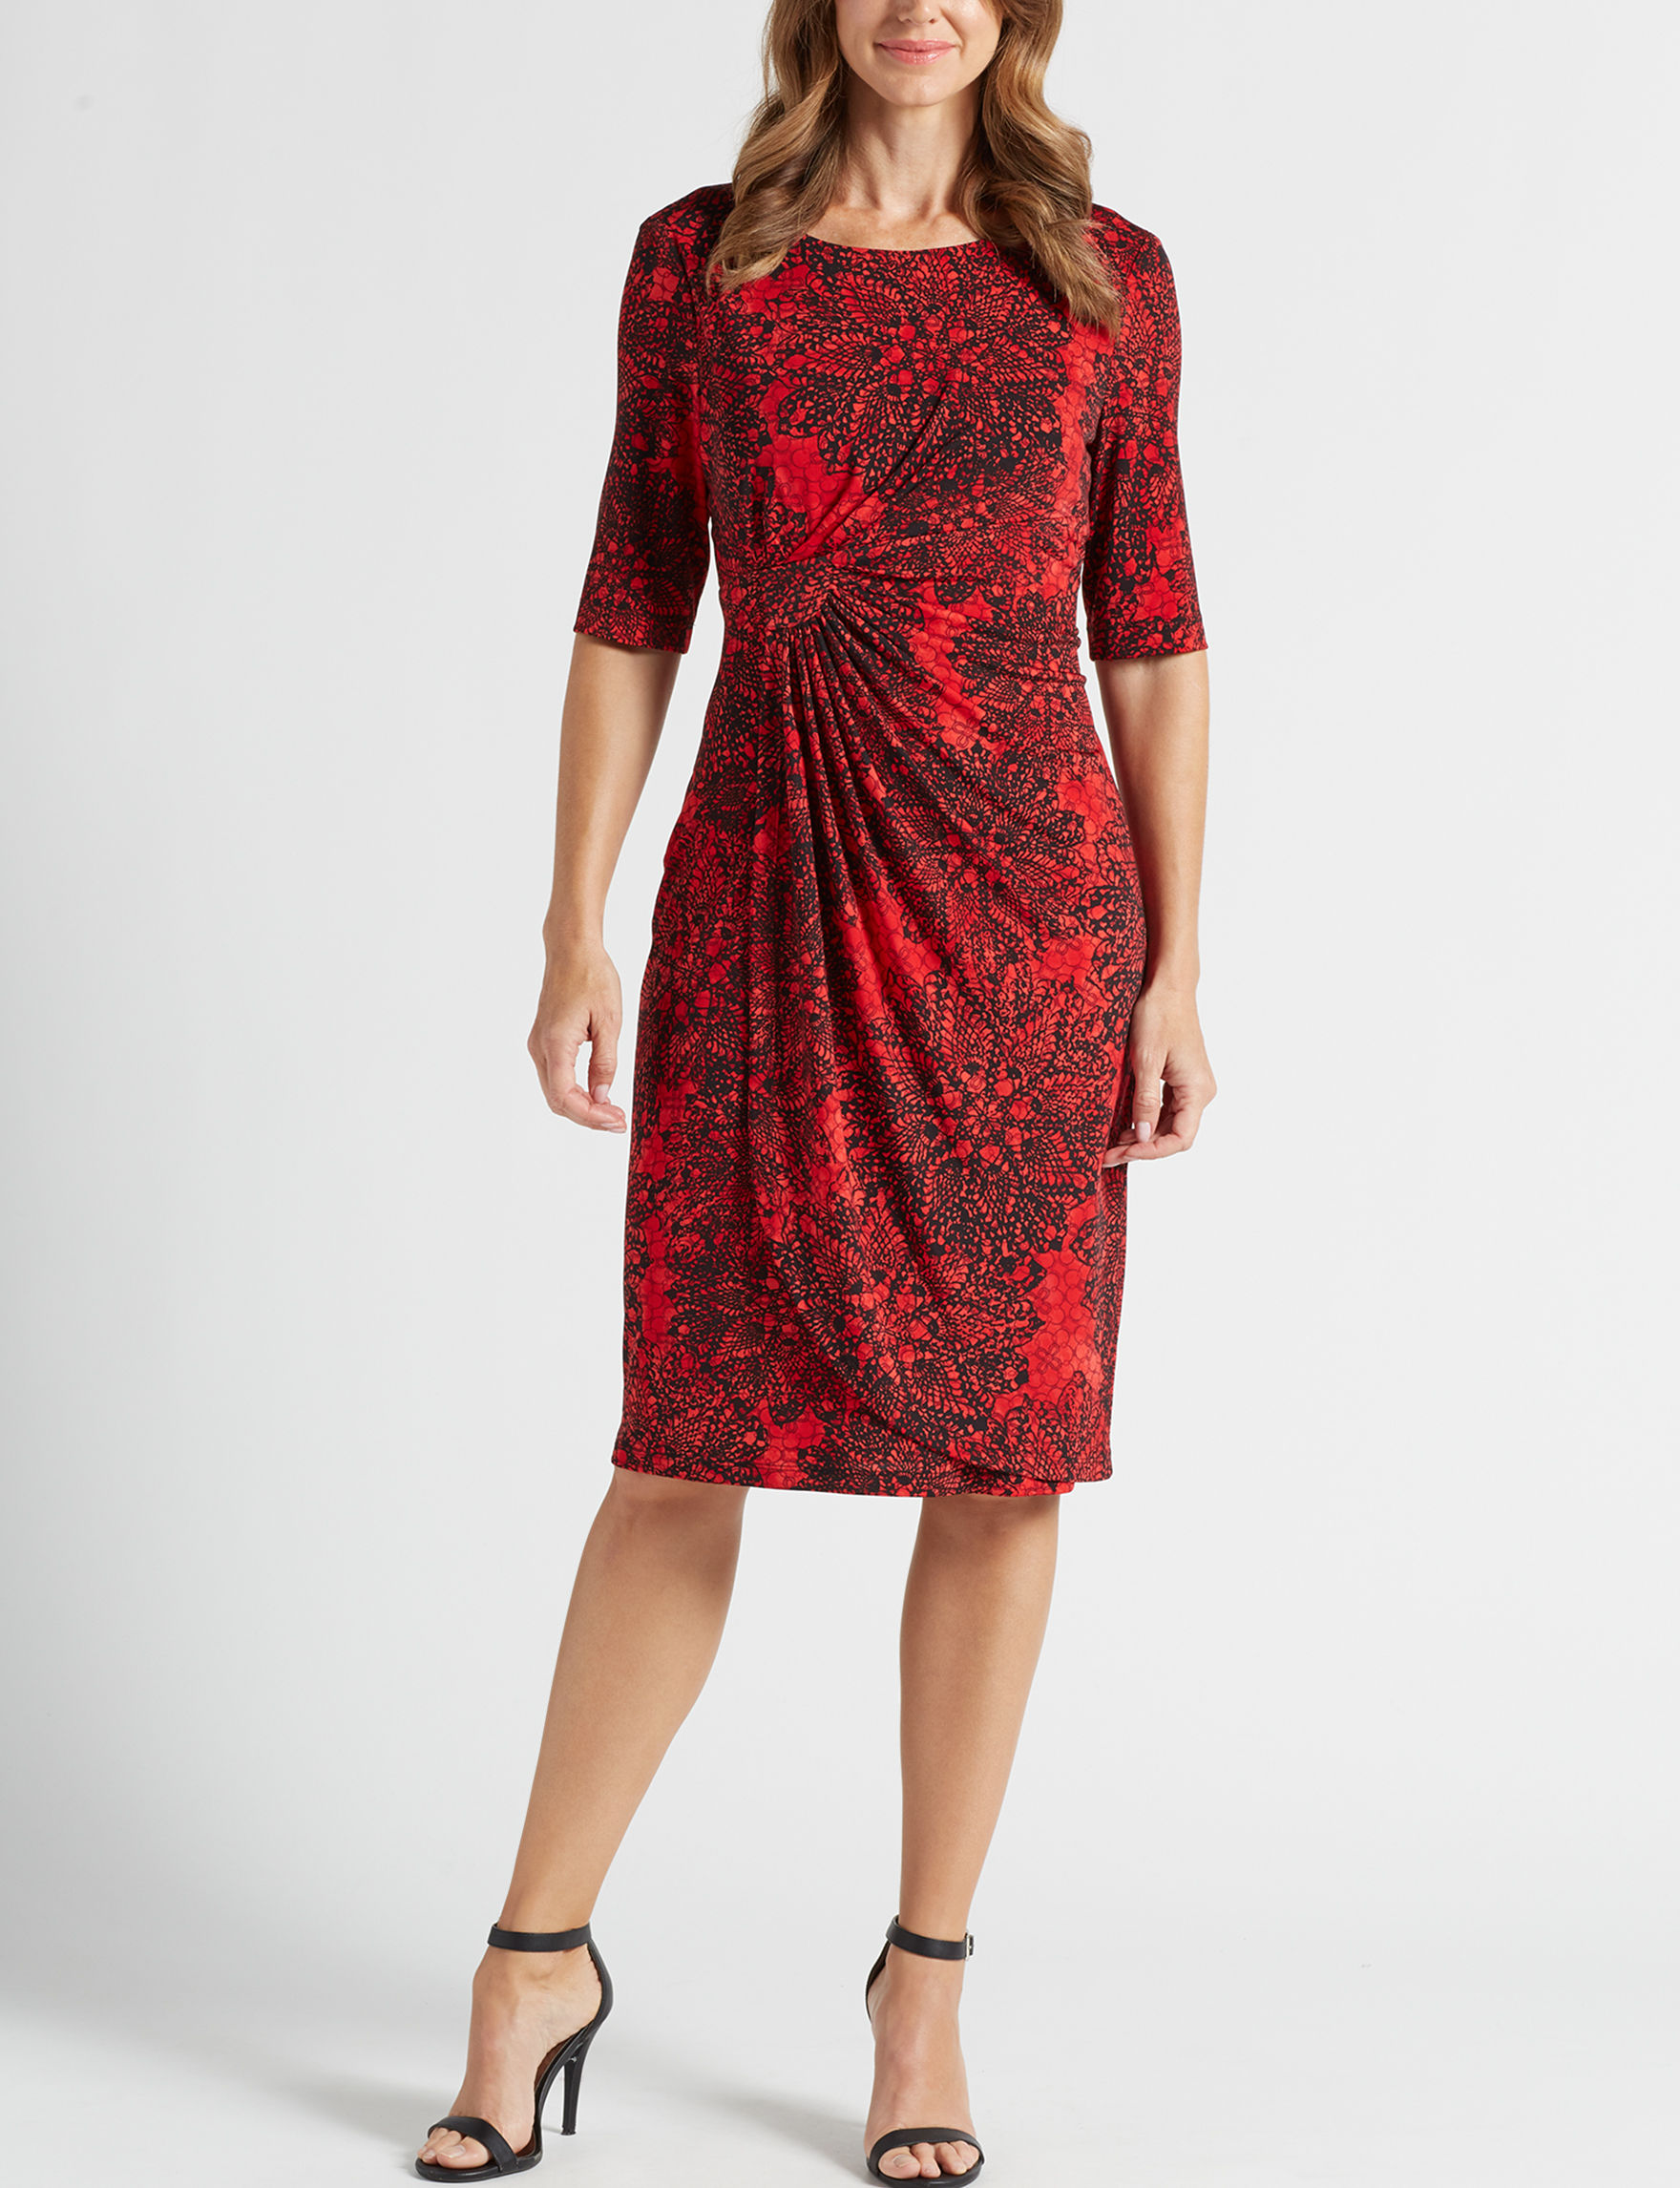 Connected Red Evening & Formal Sheath Dresses